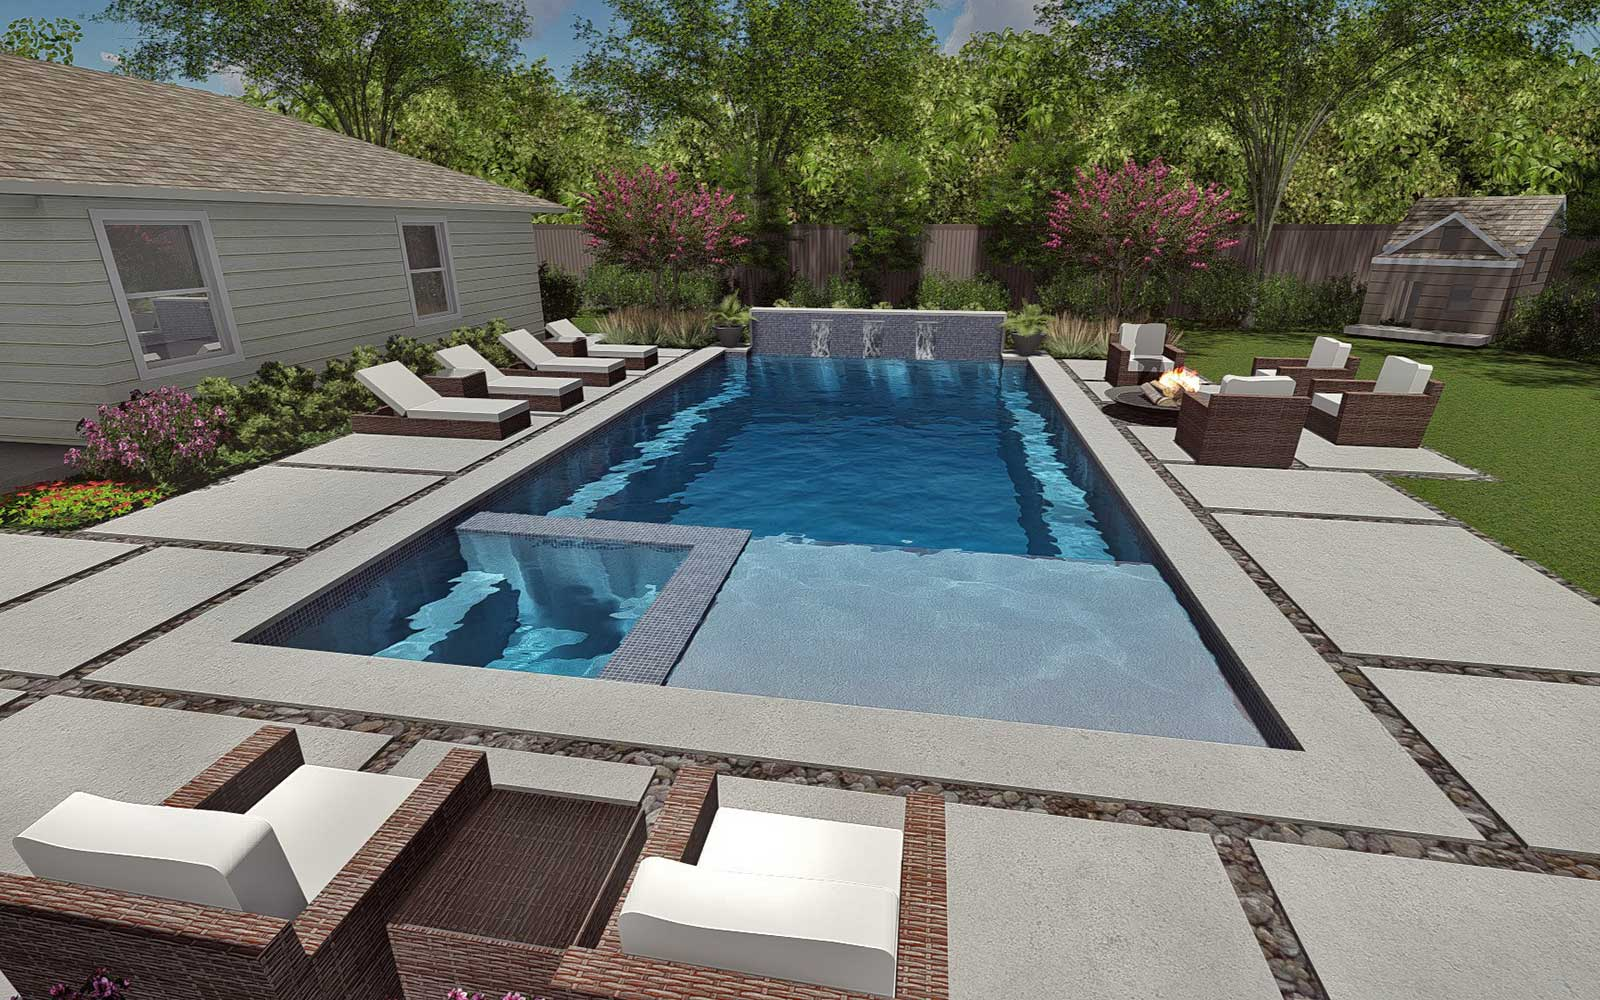 DESIGN - Design matters. We help create an exceptional level of design and detail for your custom pool project. Using 3D drawings and animations, we can bring your project to life and help visualize exactly what the finished project will look like. Jim's education in Landscape Architecture and his emphasis on design can help you create the perfect design to fit your property, family's needs and your budget.